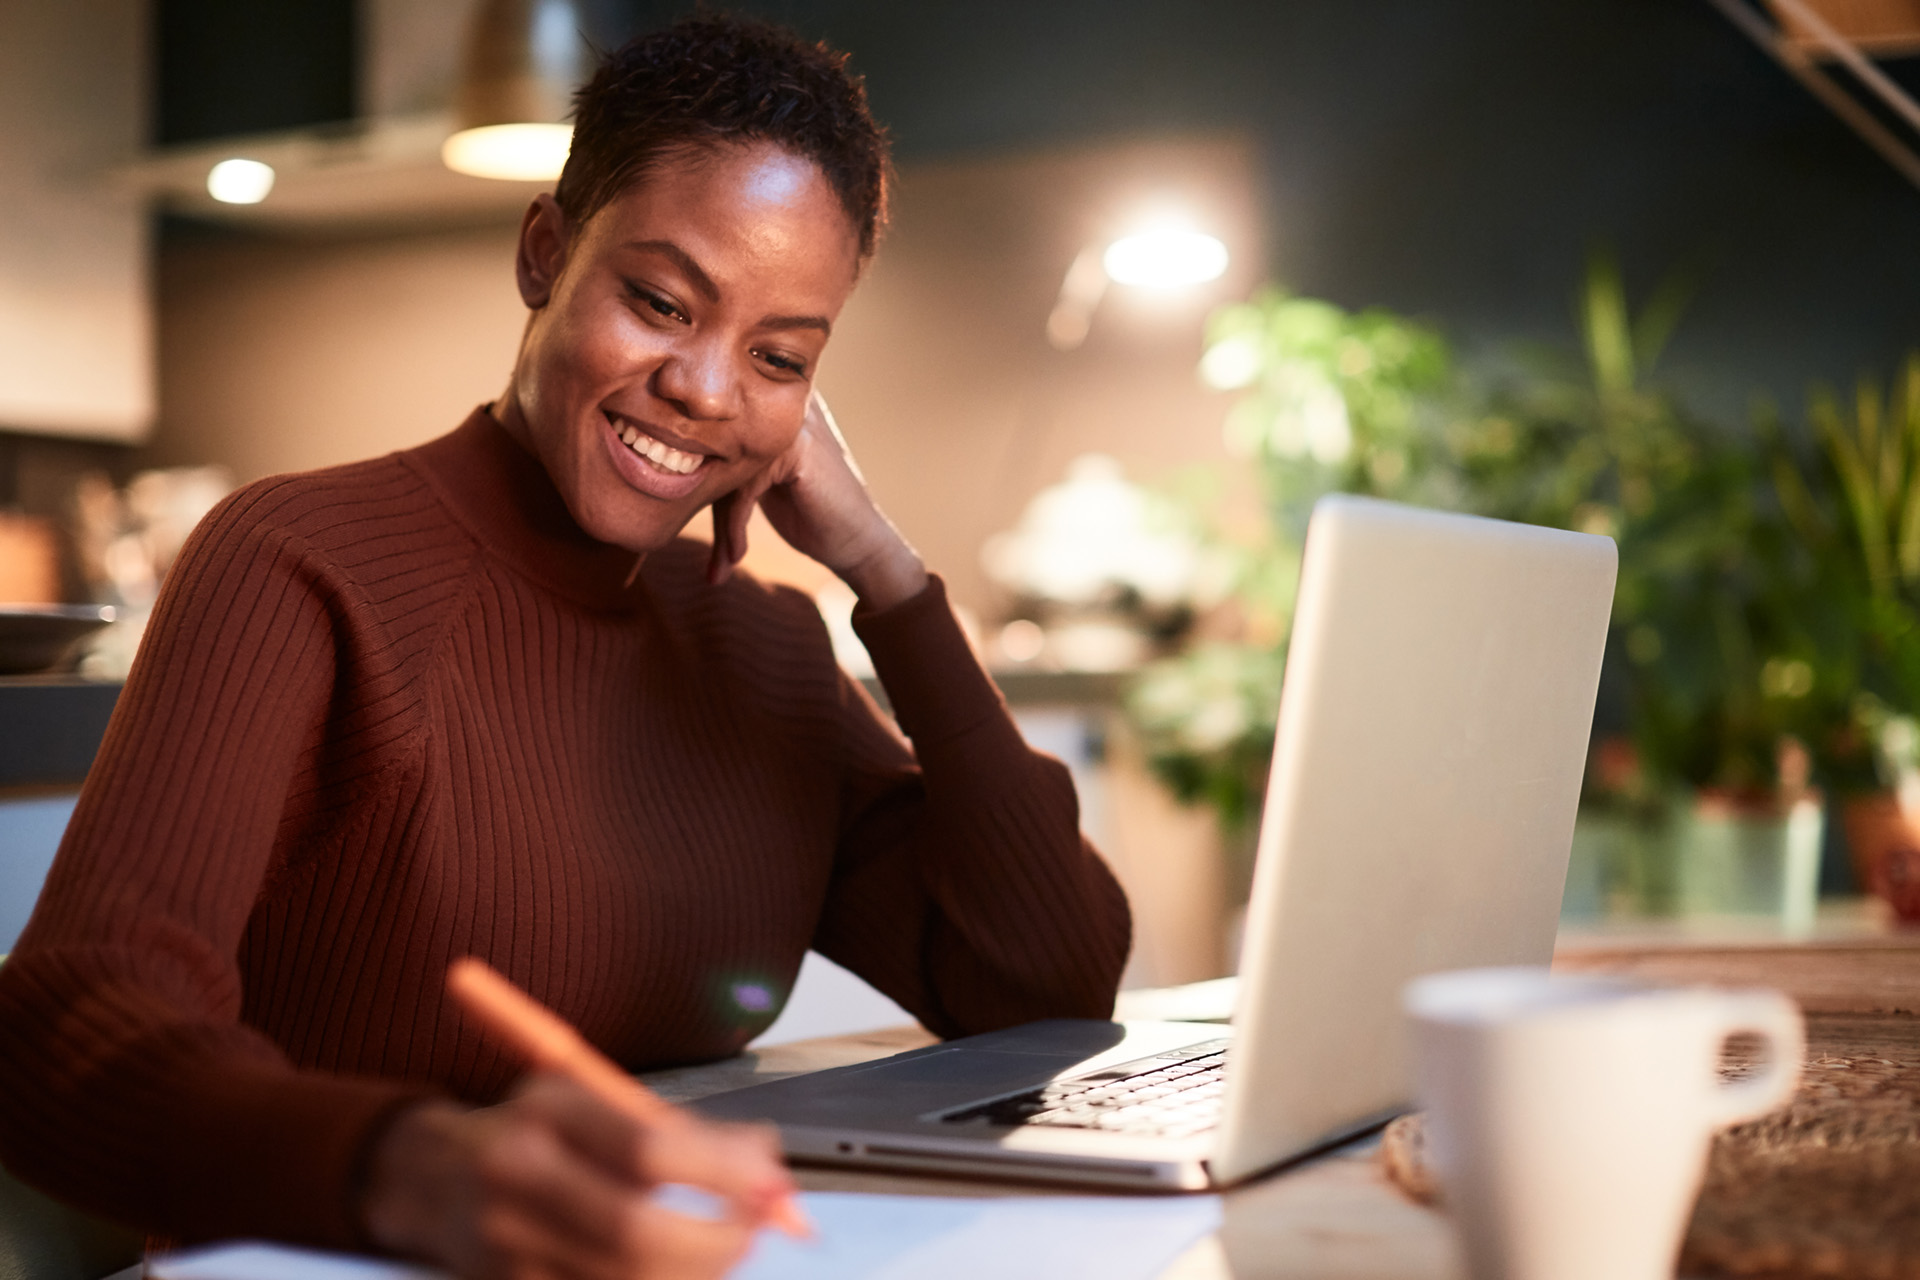 African American woman working hard at a computer